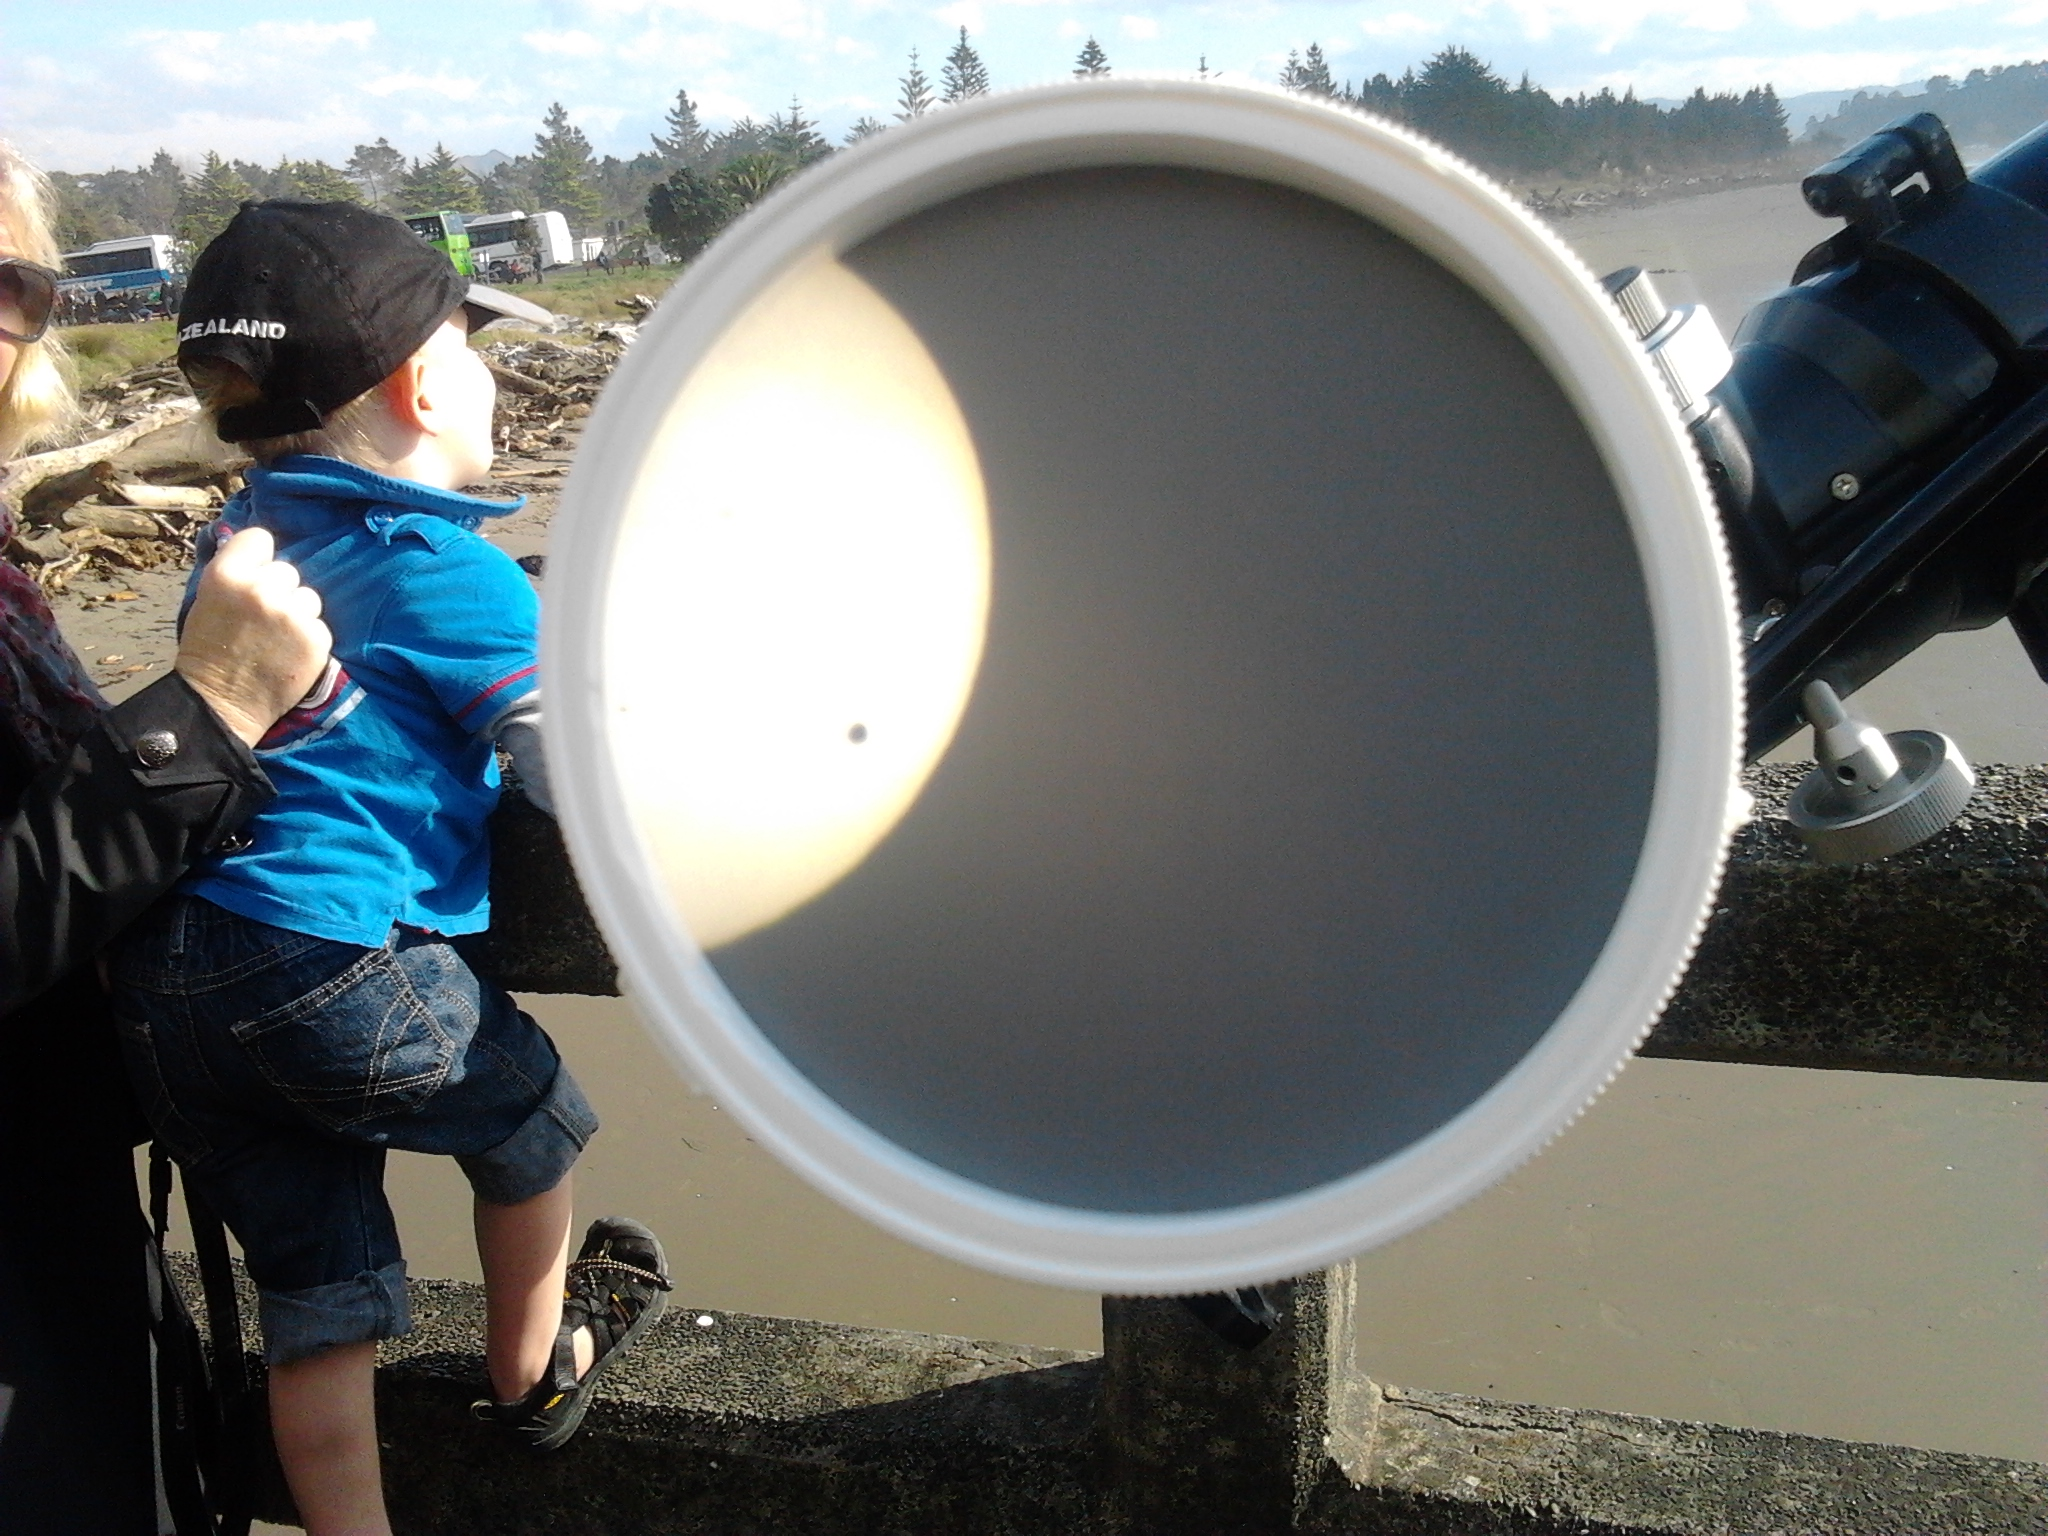 Transit of Venus from Tolaga Bay Wharf, 6th June 2012